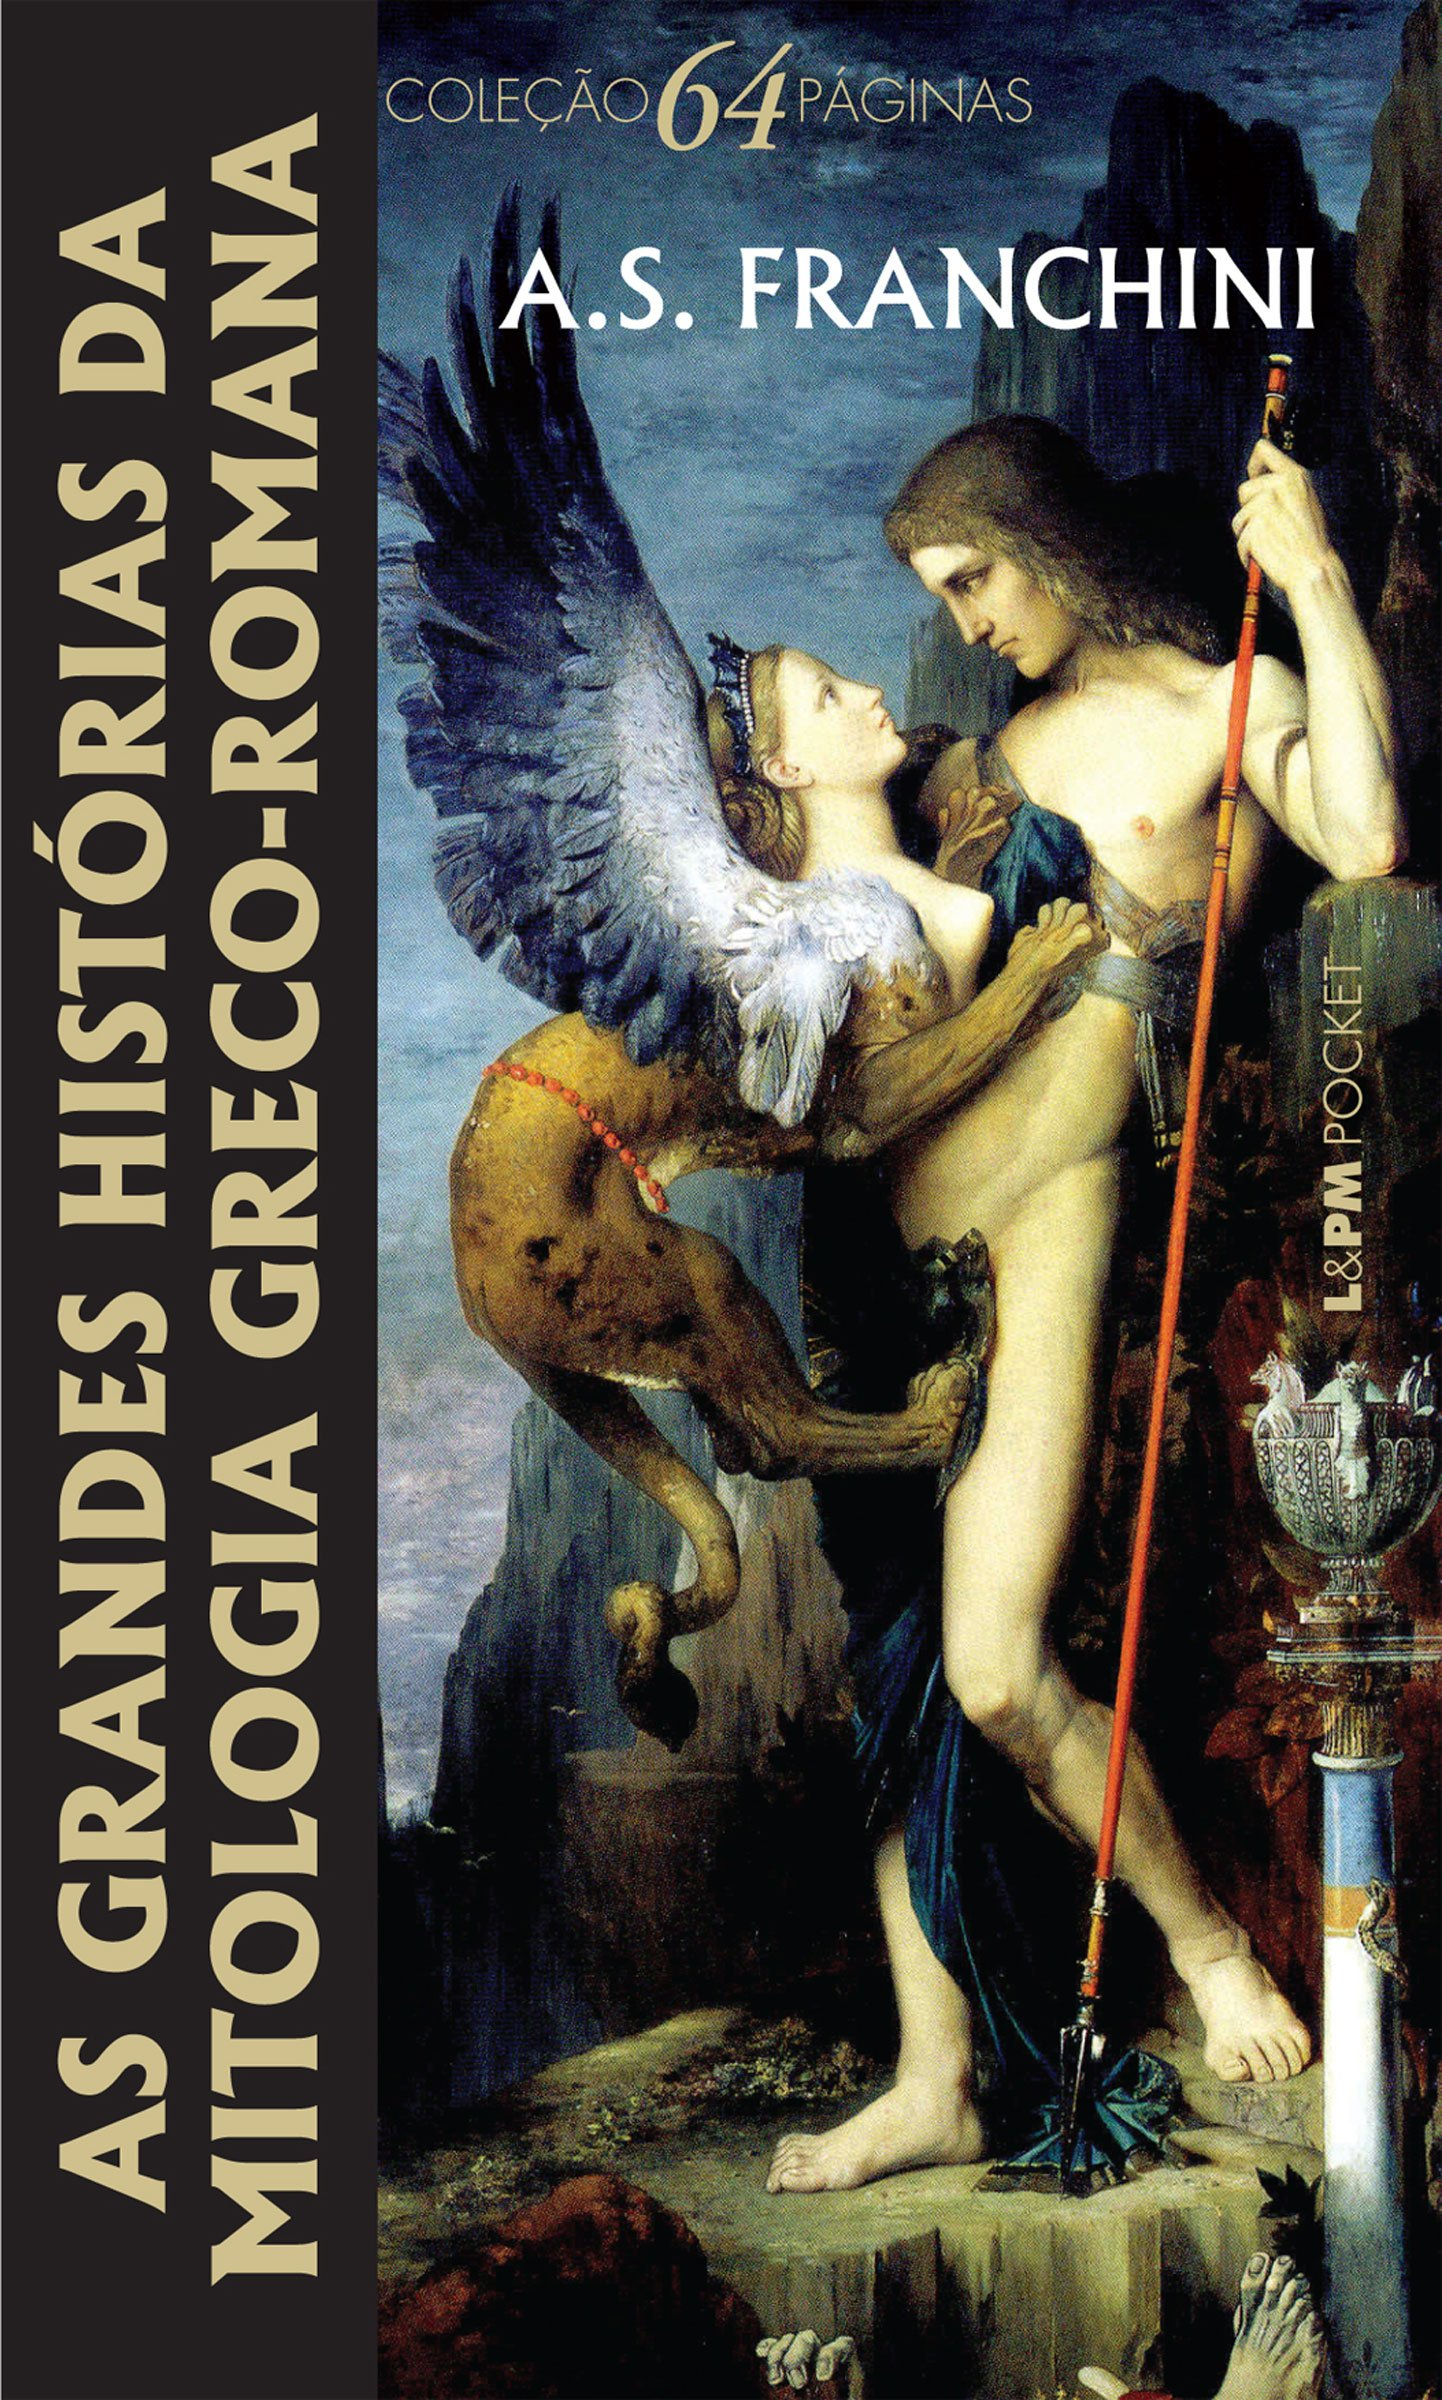 L&pm Pocket - as Grandes Histórias da Mitologia Greco-romana - A.s. Franchini